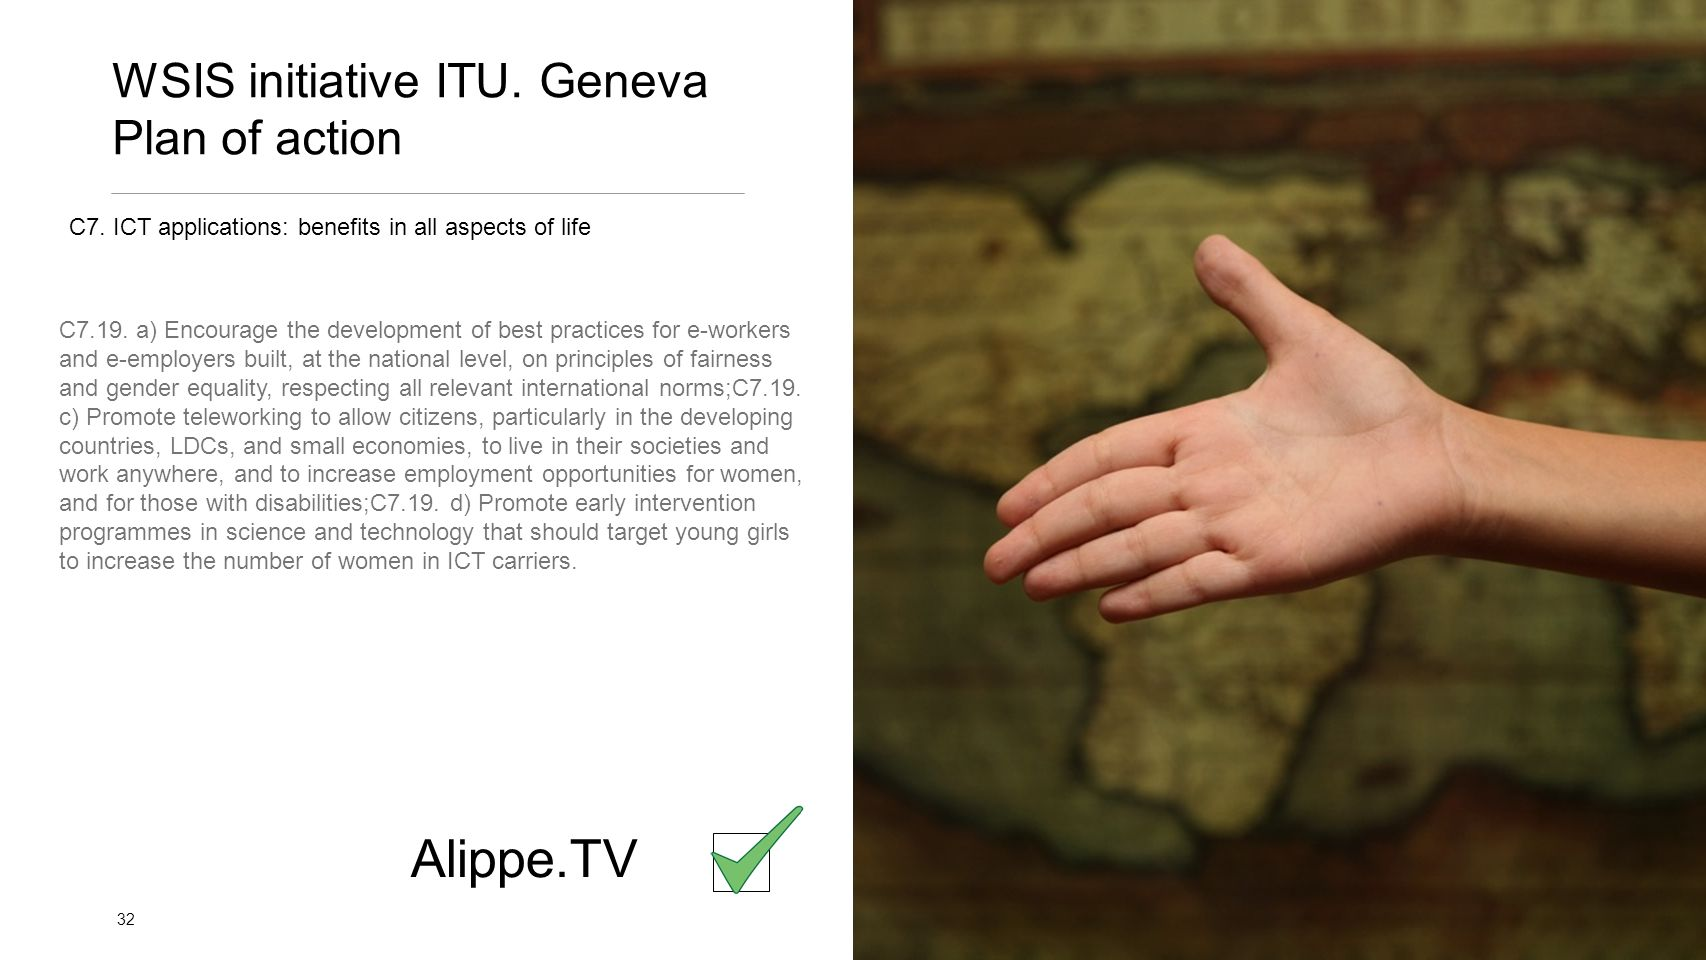 WSIS initiative ITU. Geneva Plan of action 32 Alippe.TV C7.19.